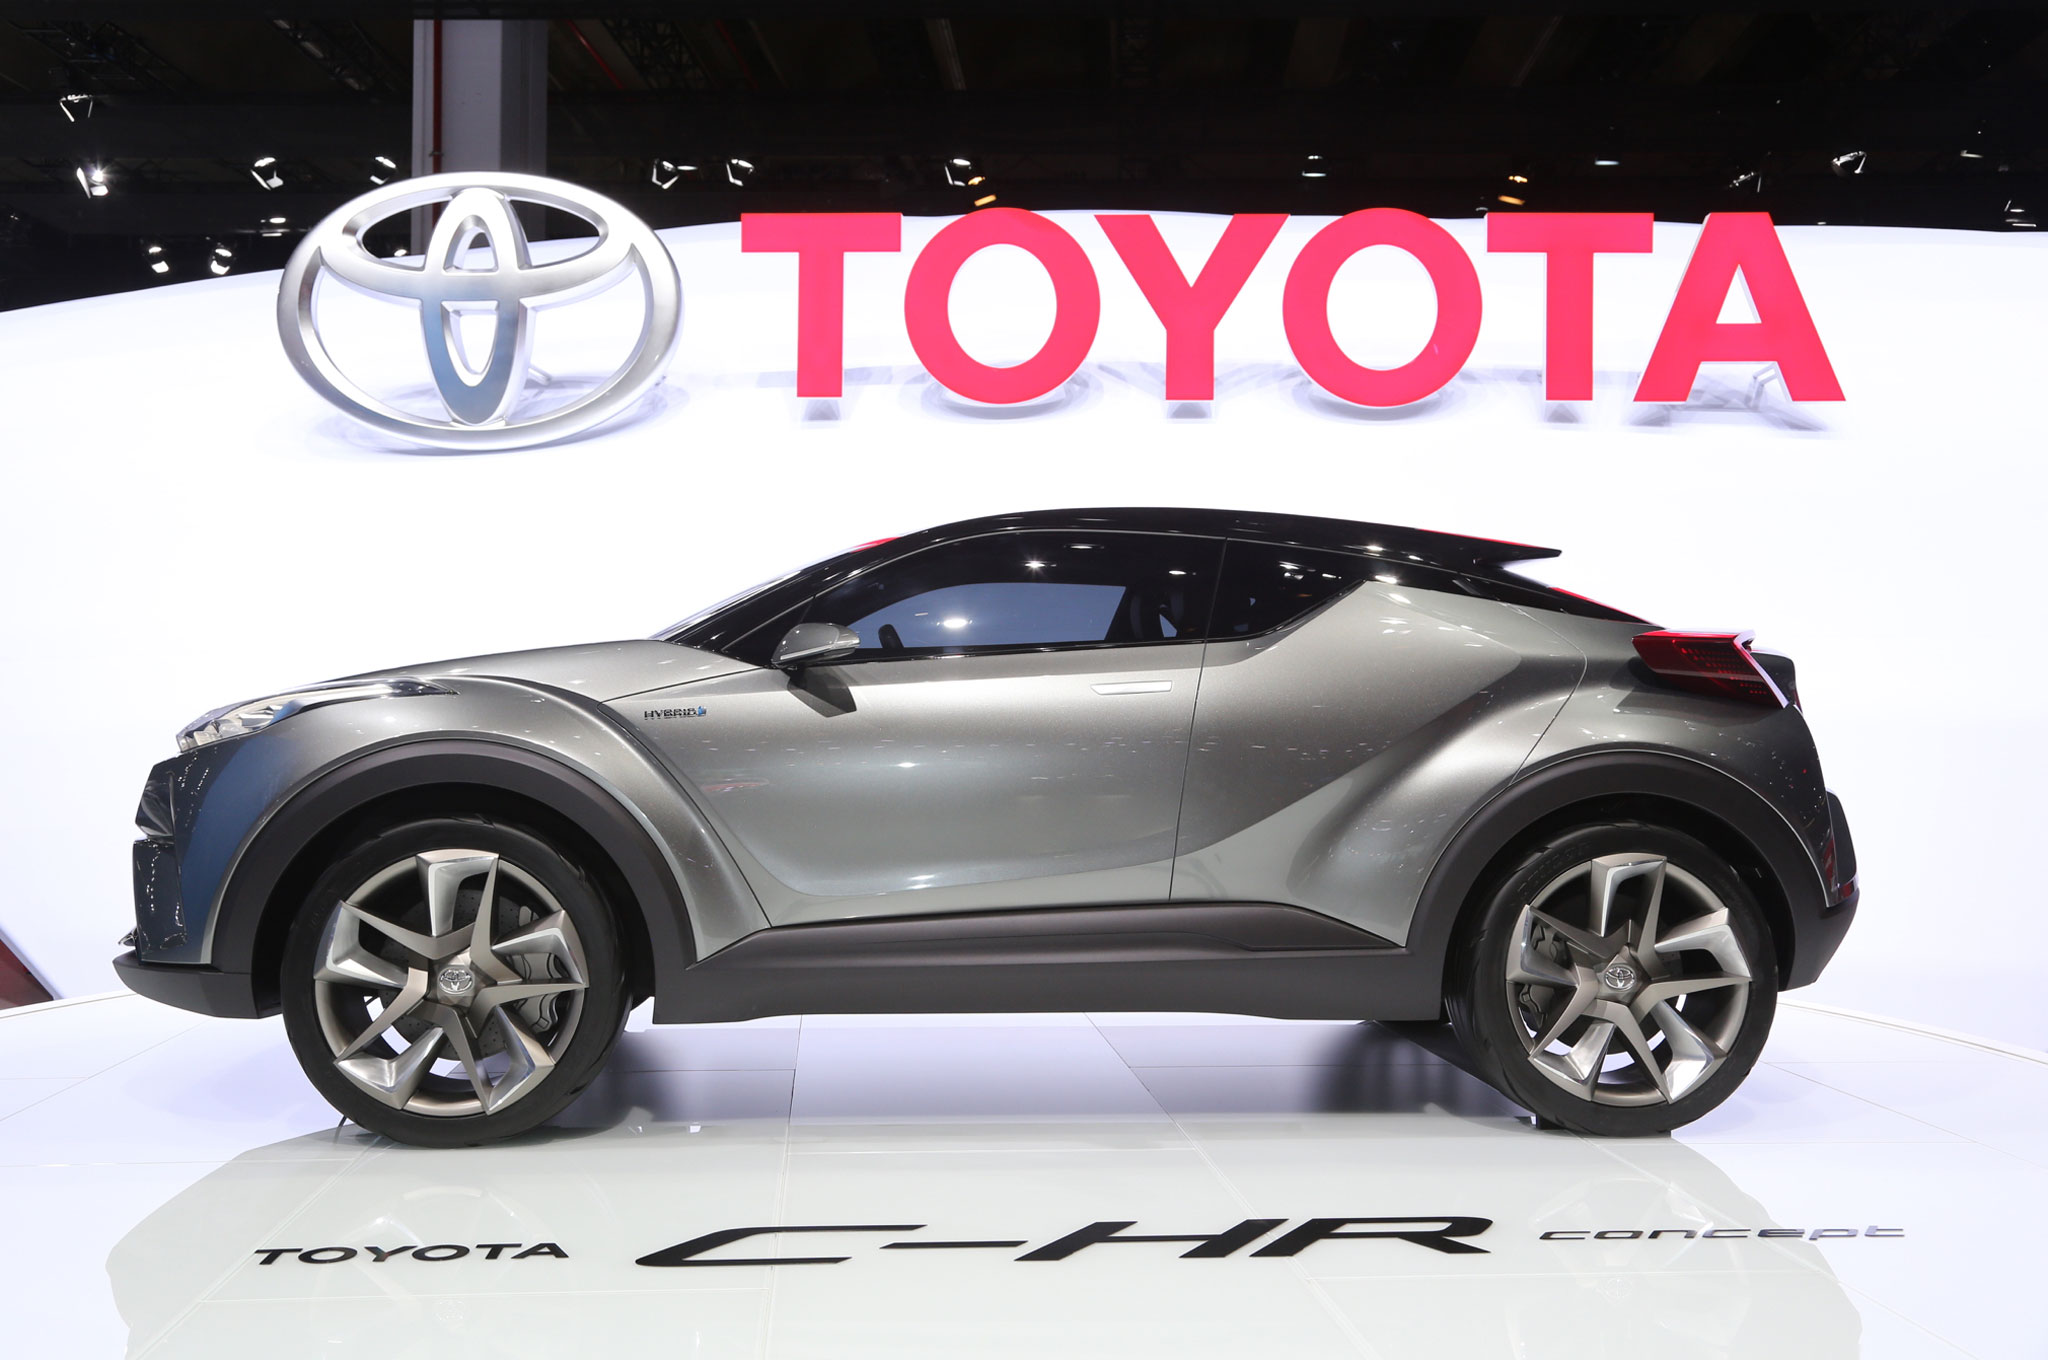 Though Toyota